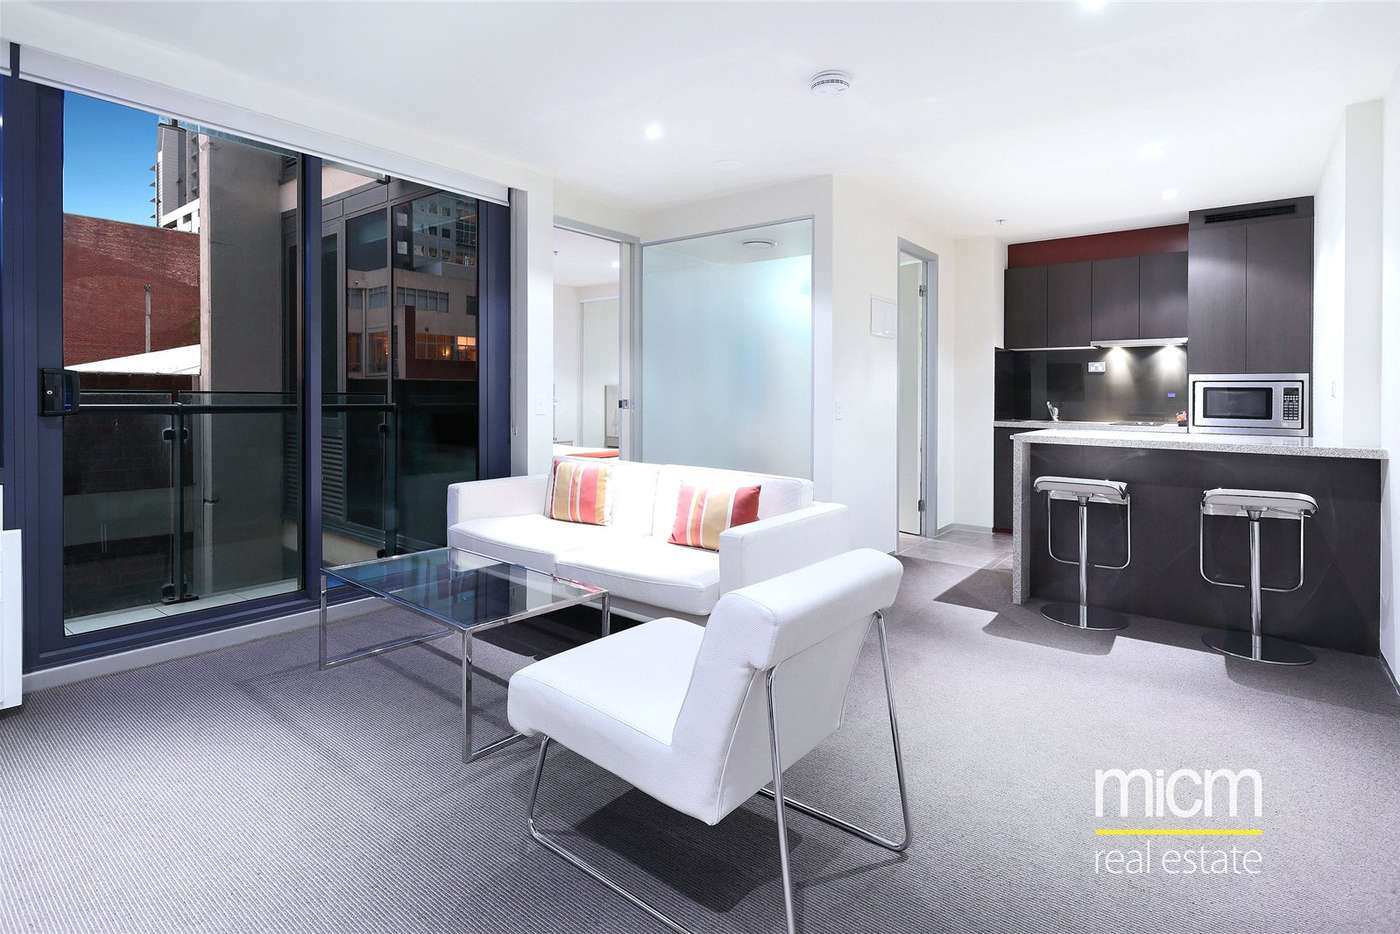 Main view of Homely apartment listing, 412/181 ABeckett Street, Melbourne VIC 3000